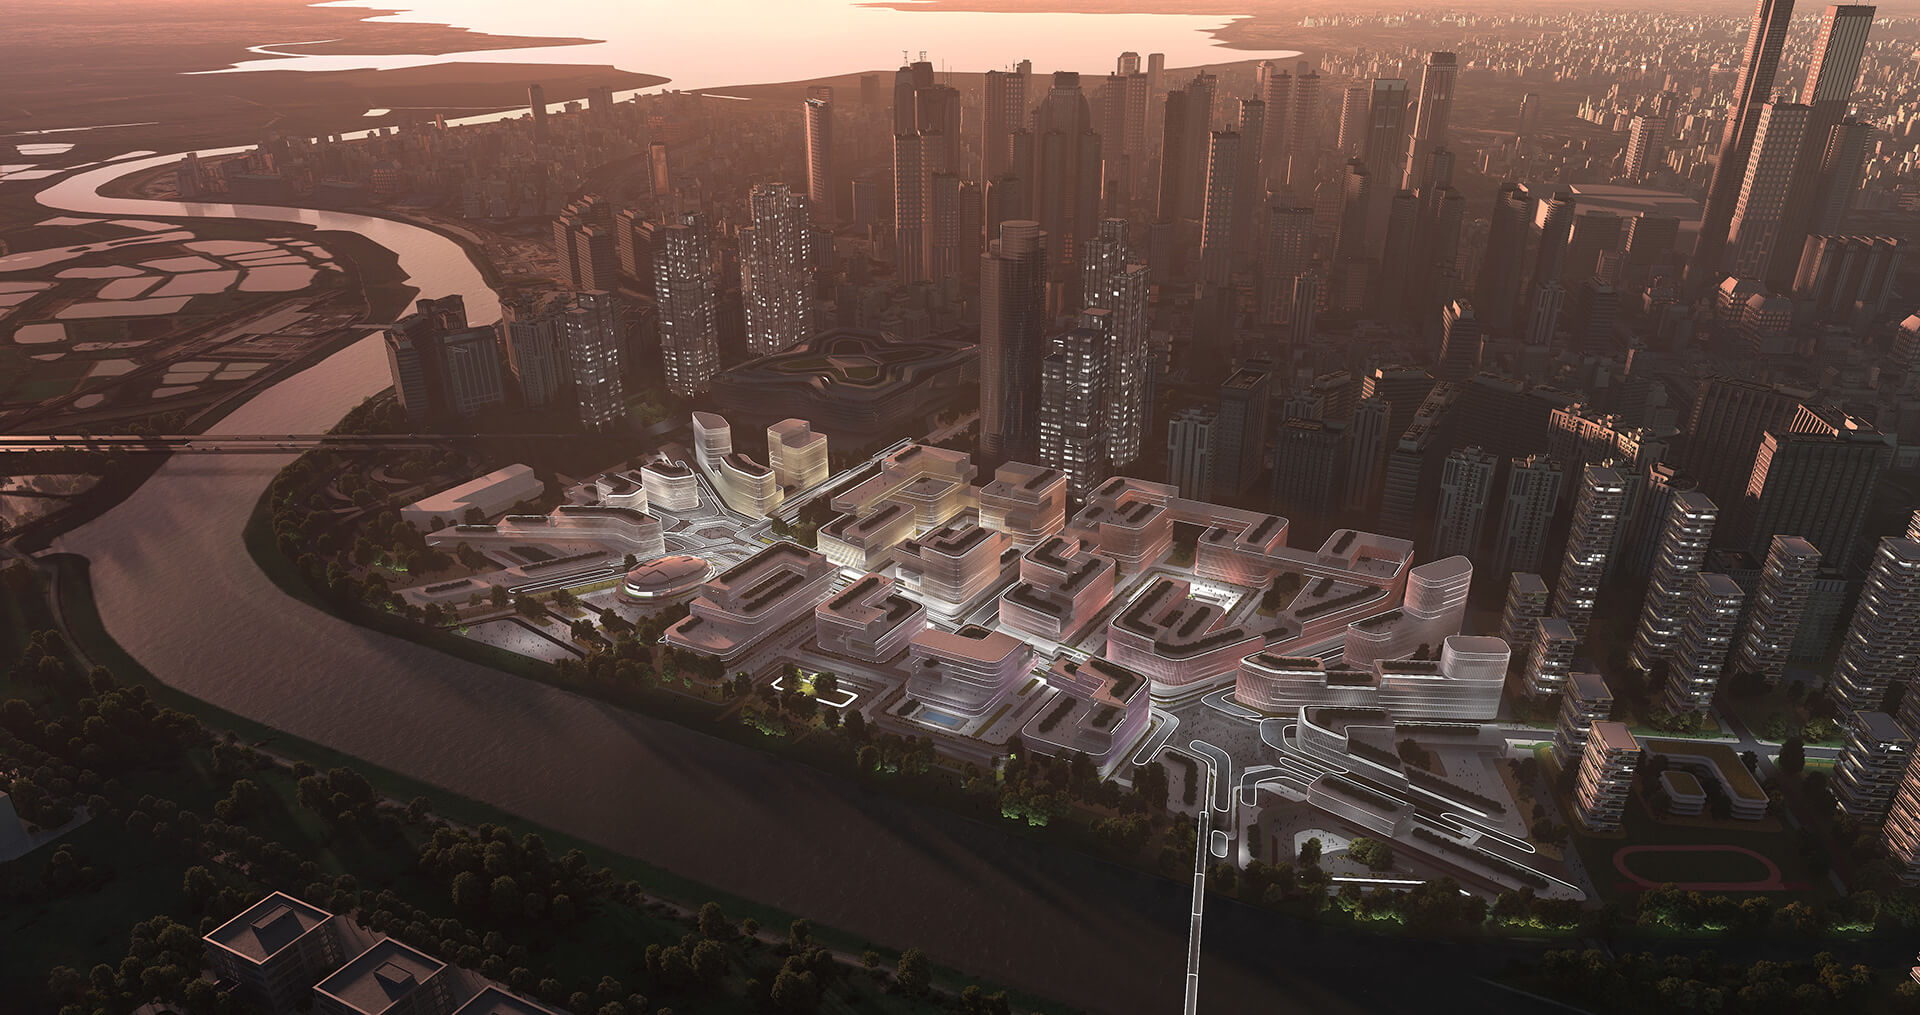 The development lies on the proposed Guangzhou-Shenzhen Science and Technology Innovation Corridor | Huanggang Port Area Masterplan | Zaha Hadid Architects | STIRworld